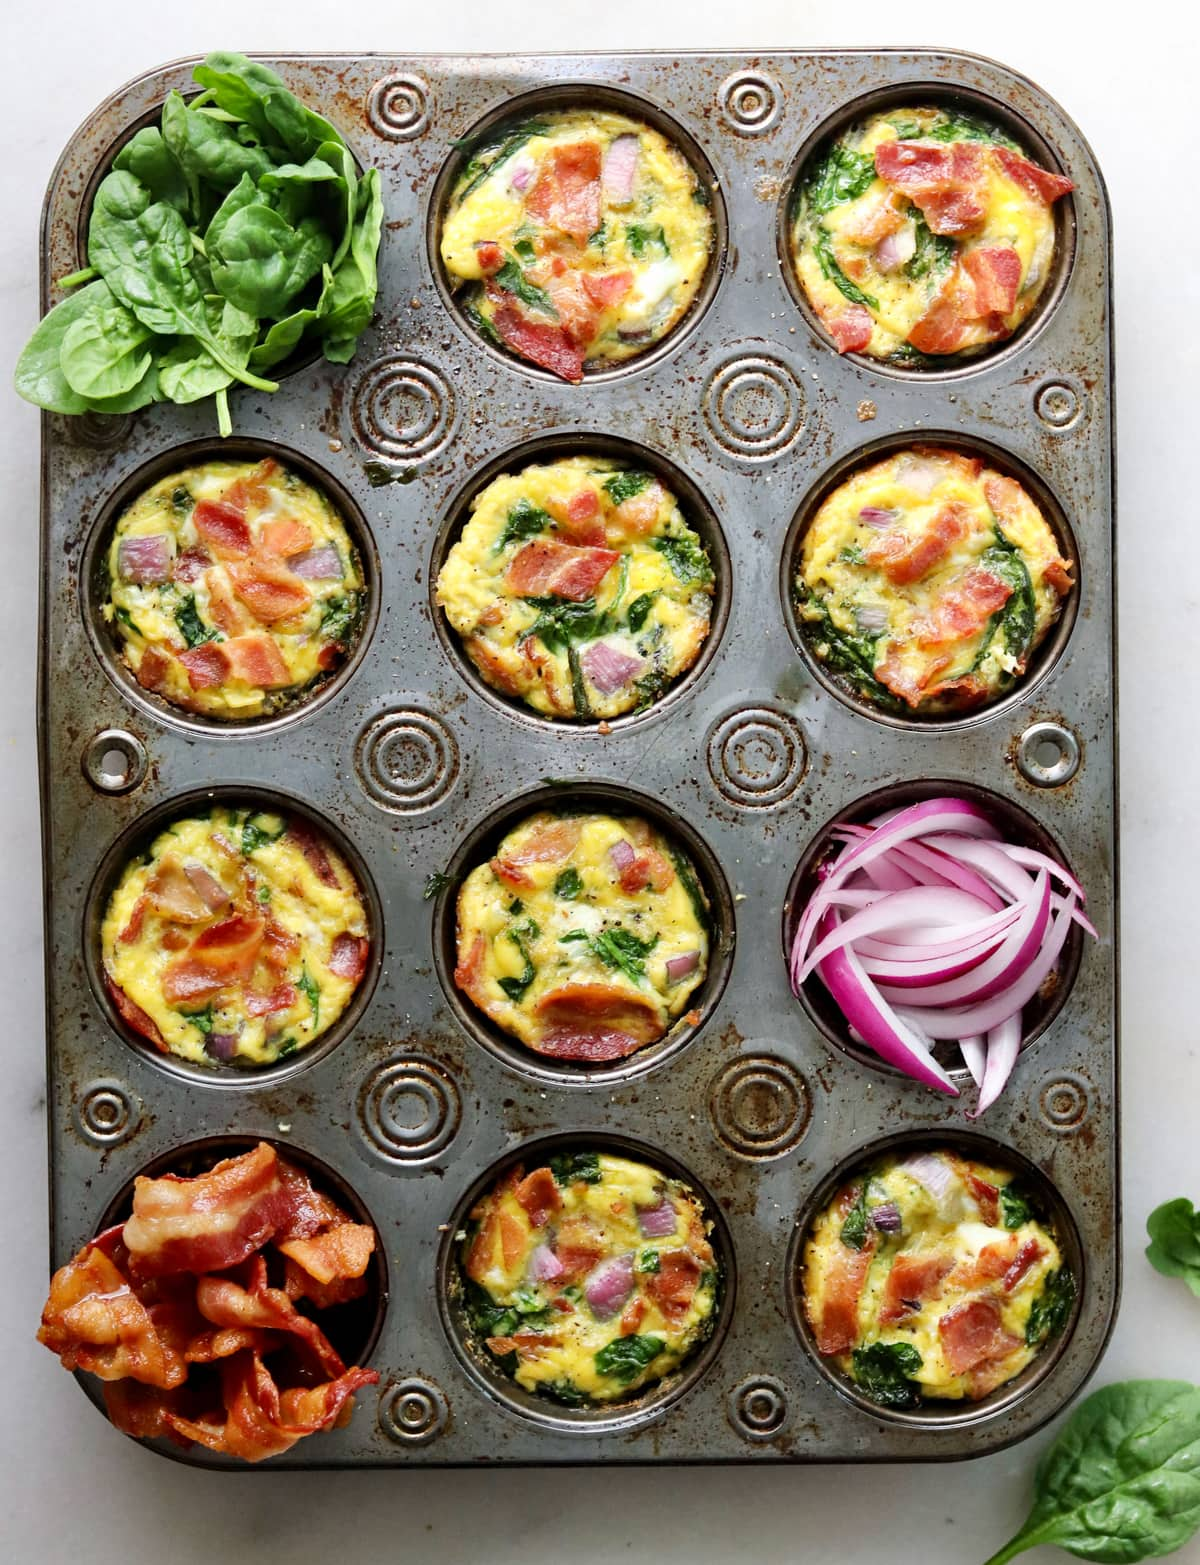 Top down of the cooked individual frittatas in the muffin tin.